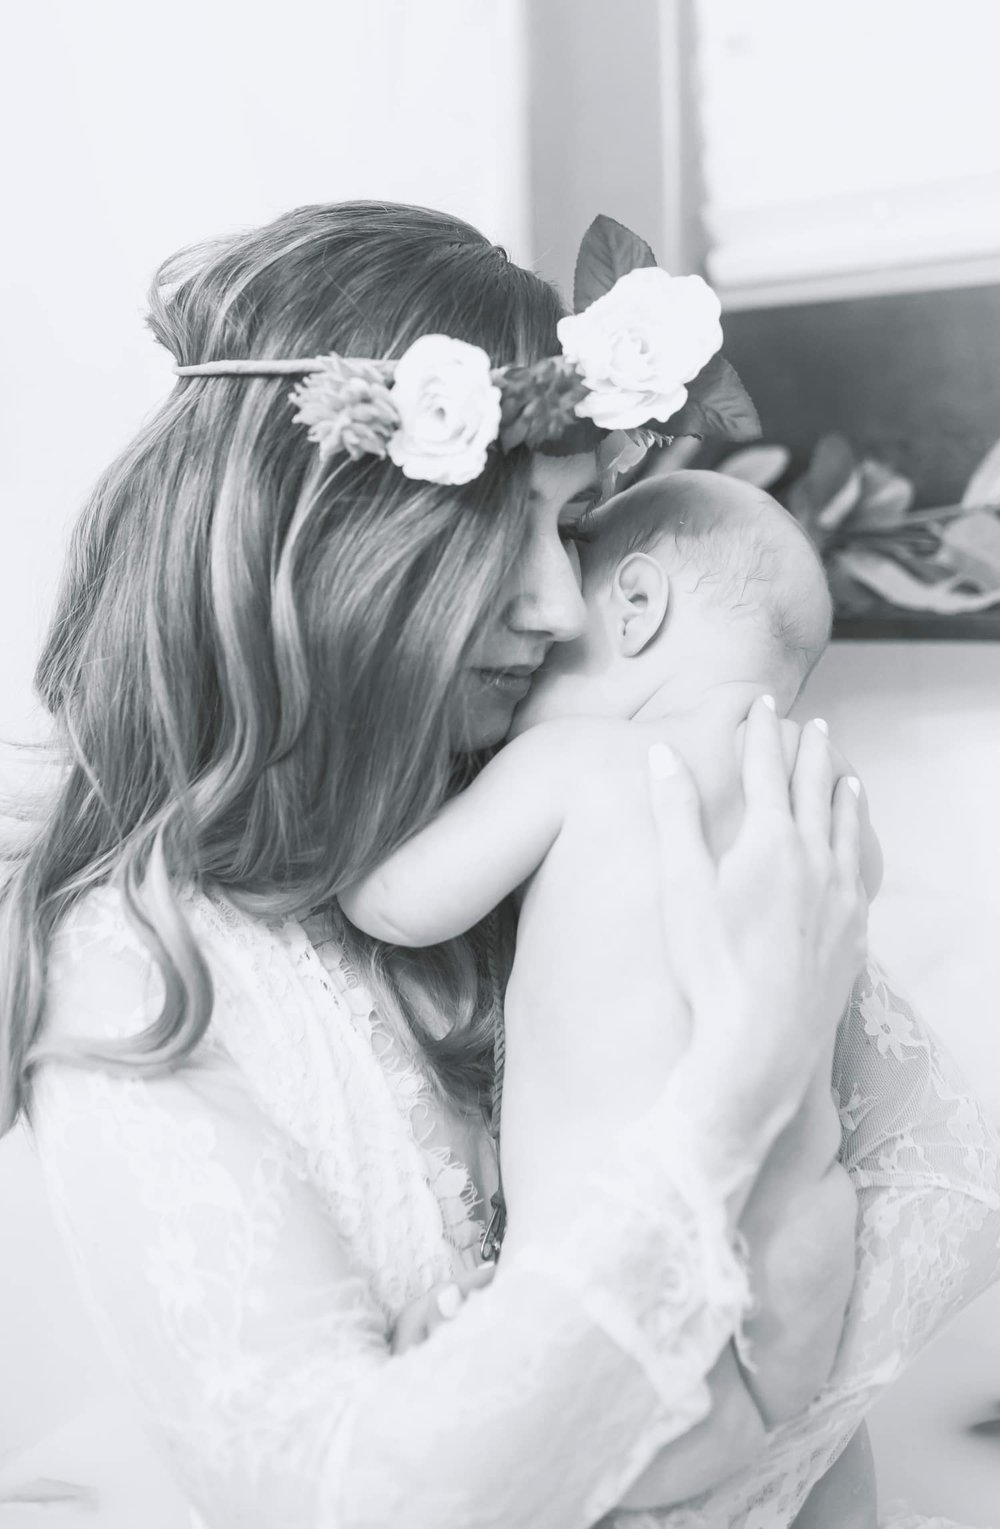 Dear Isla - A letter To You About Your Birth -